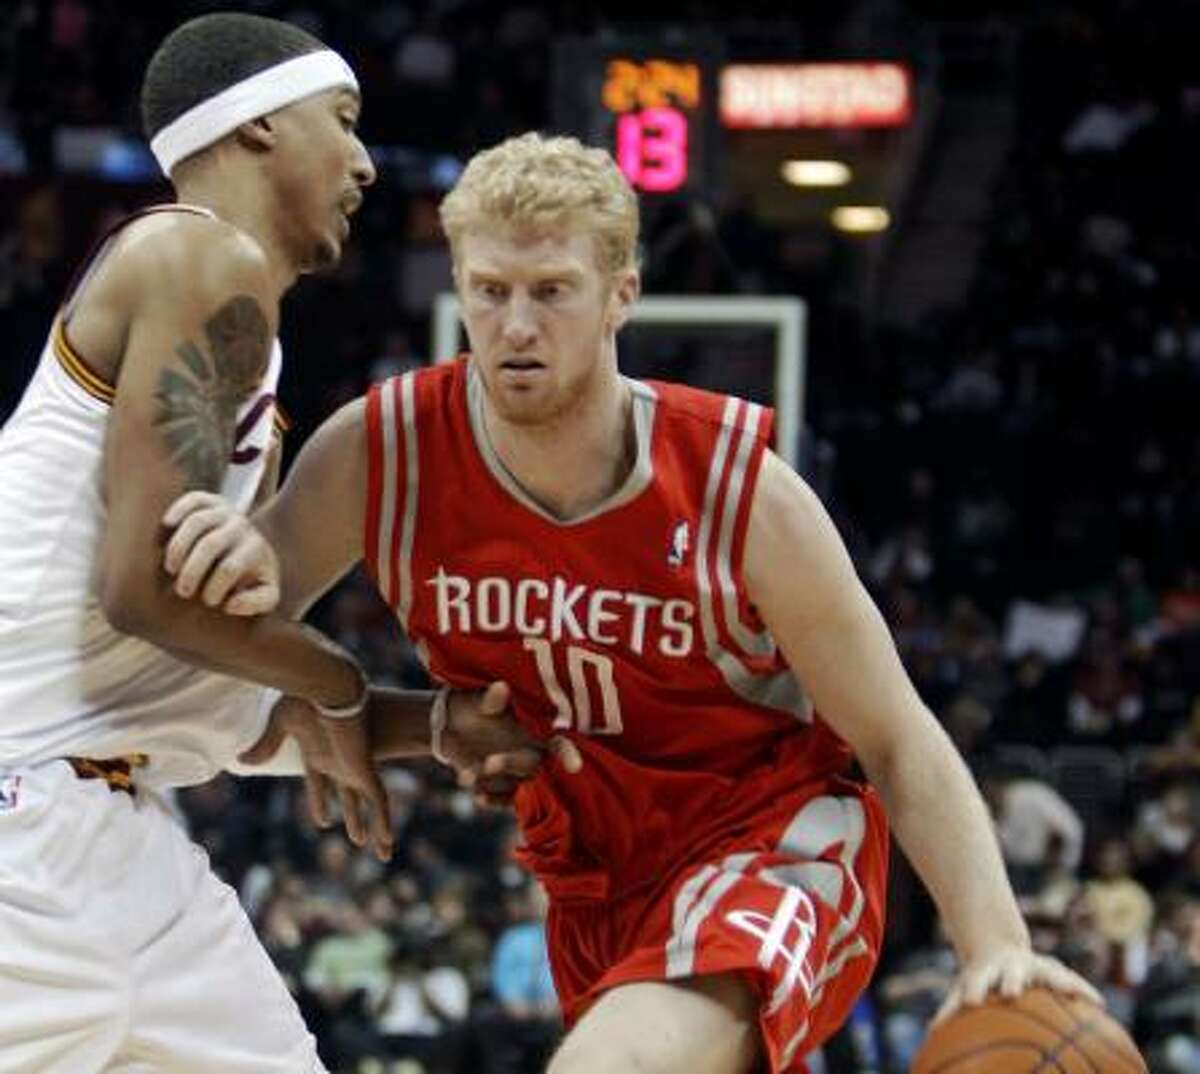 Feb. 23: Rockets 124, Cavaliers 119 Rockets forward Chase Budinger (10) drives past Cleveland's Jamario Moon in the third quarter. Budinger scored a career-high 30 points off the bench, including 11 straight in the fourth quarter, to lead the Rockets past the Cavaliers on Wednesday night in Cleveland.